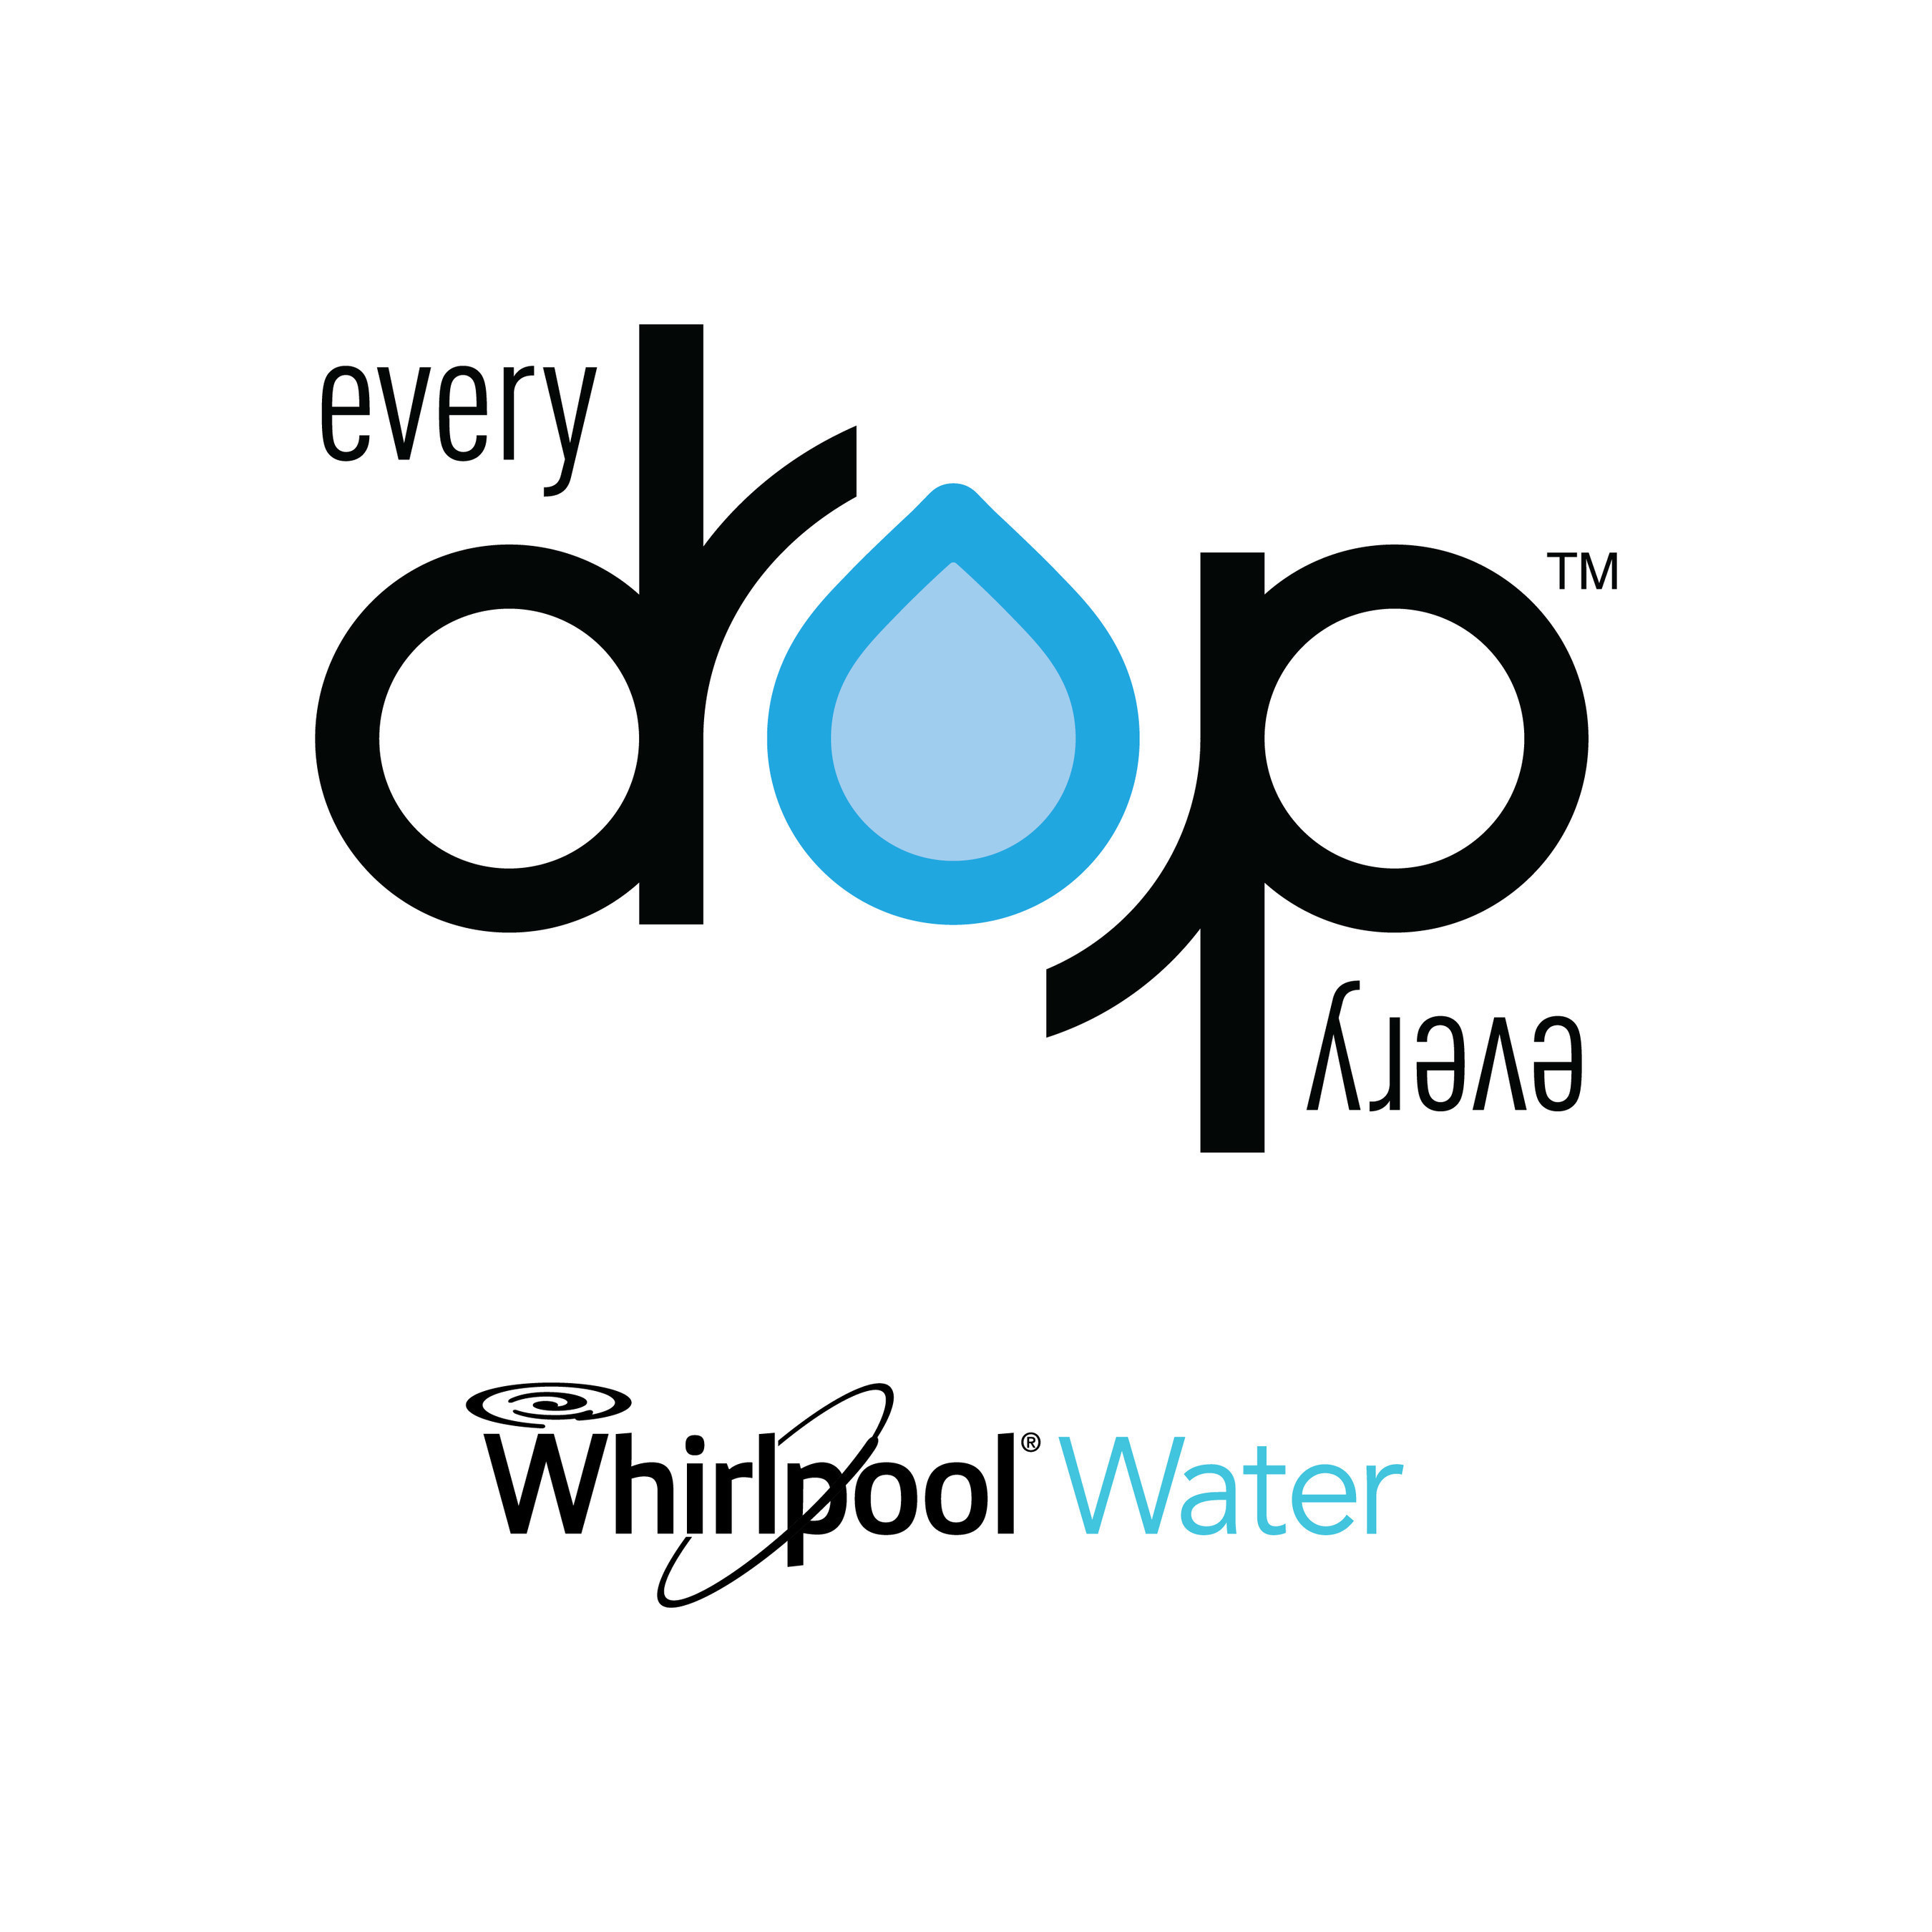 EveryDrop'' Filters by Whirlpool' Water Make a Splash at the International Home + Housewares Show